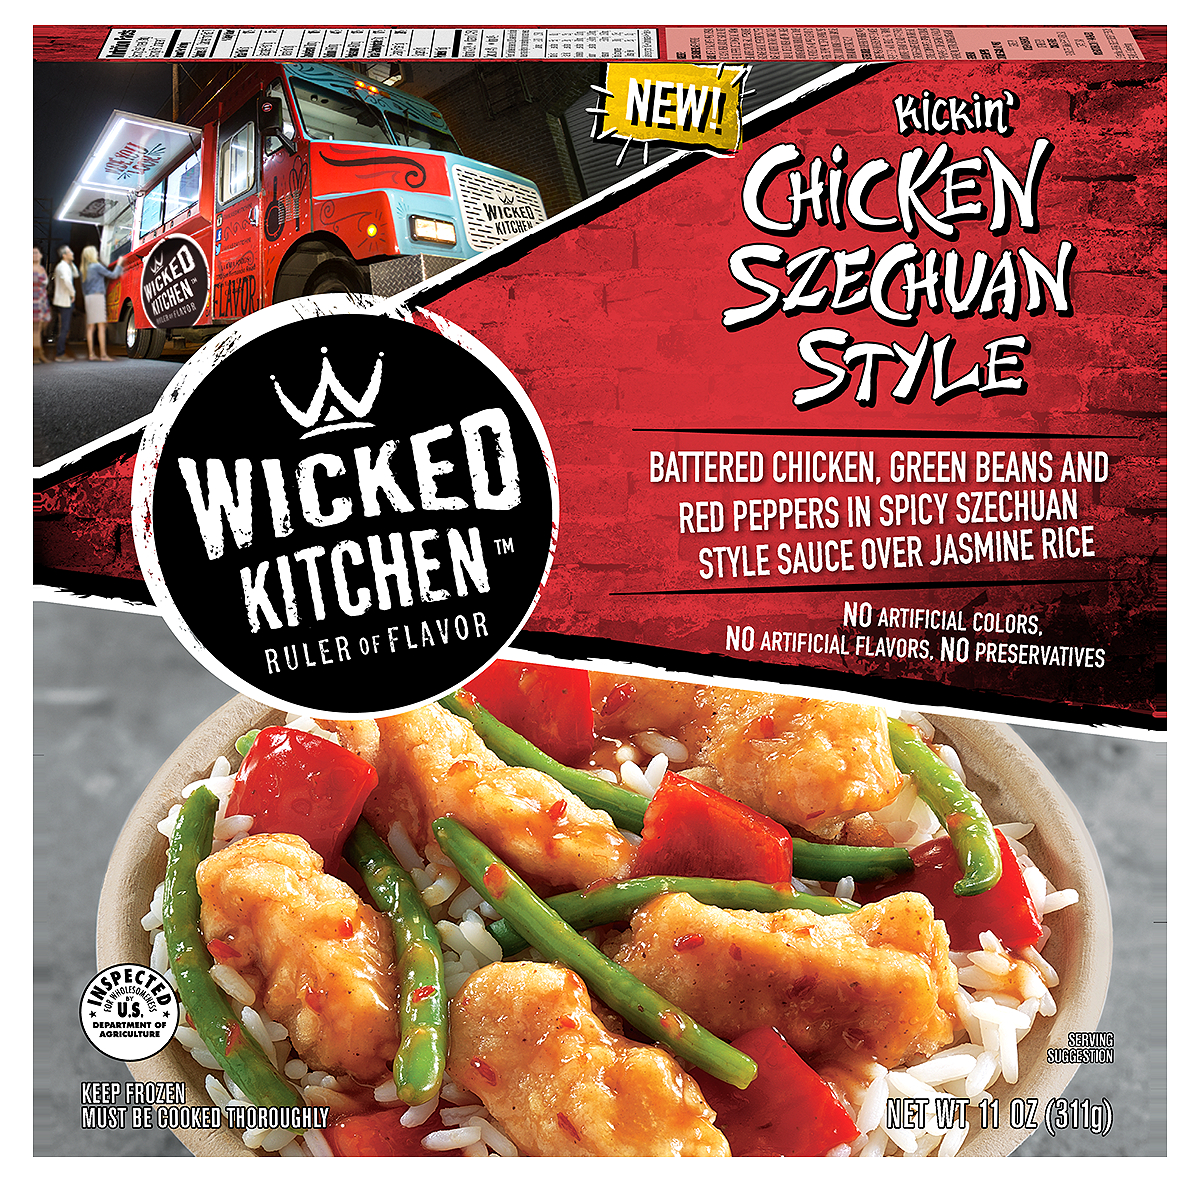 Wicked Kitchen Kickin Chicken Szechuan Style, 11 oz